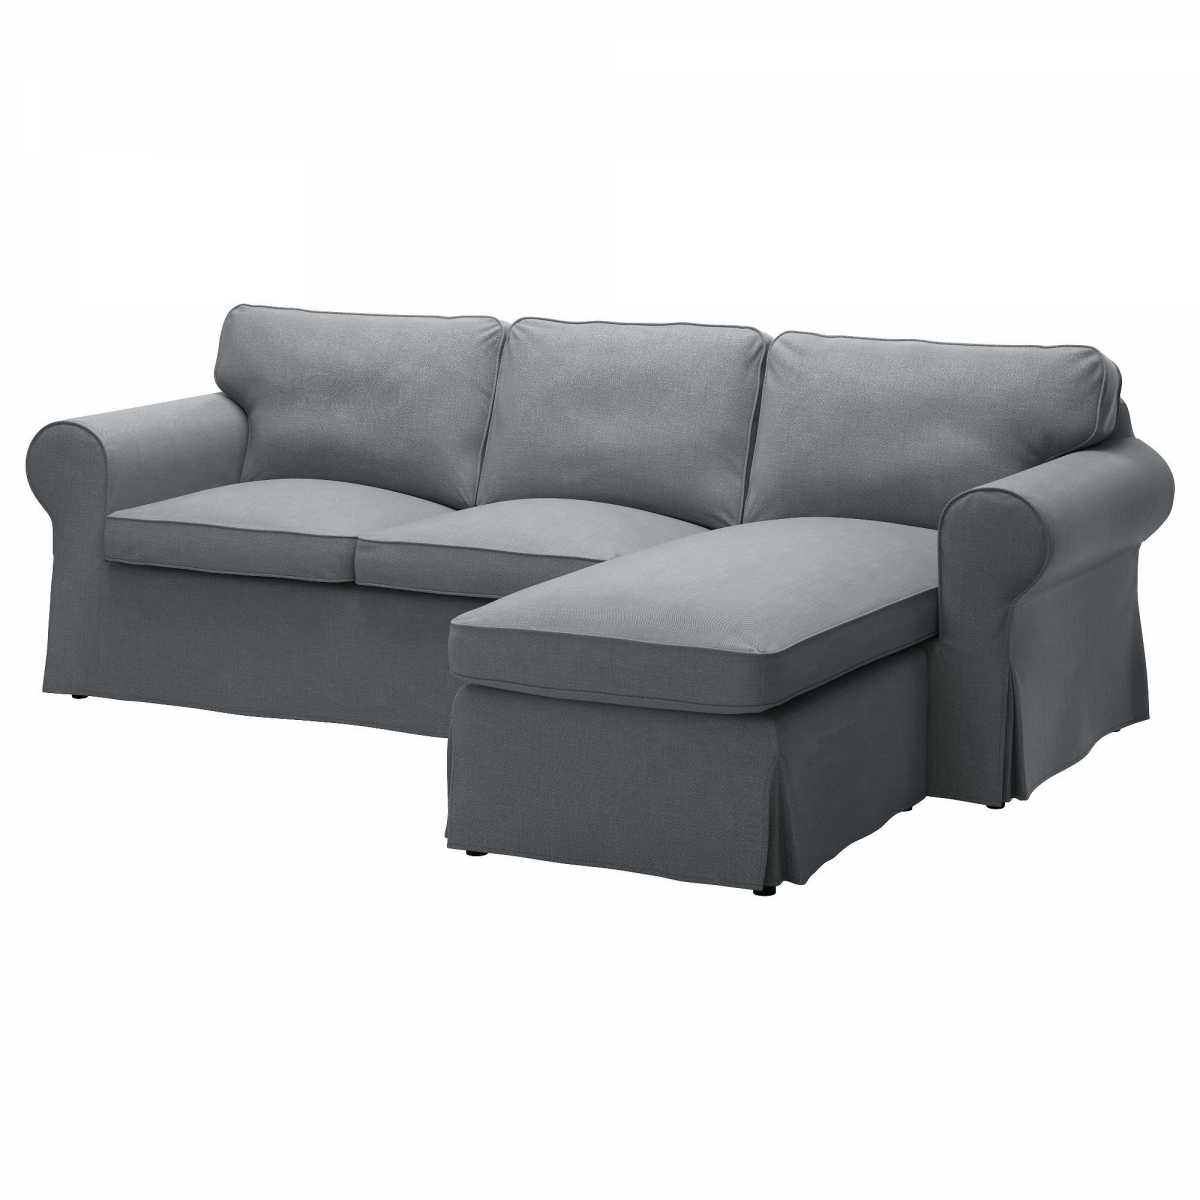 Famous Loveseats With Chaise Throughout Loveseat : Chaise Loveseat New Small Loveseat With Chaise Lounge (View 7 of 15)